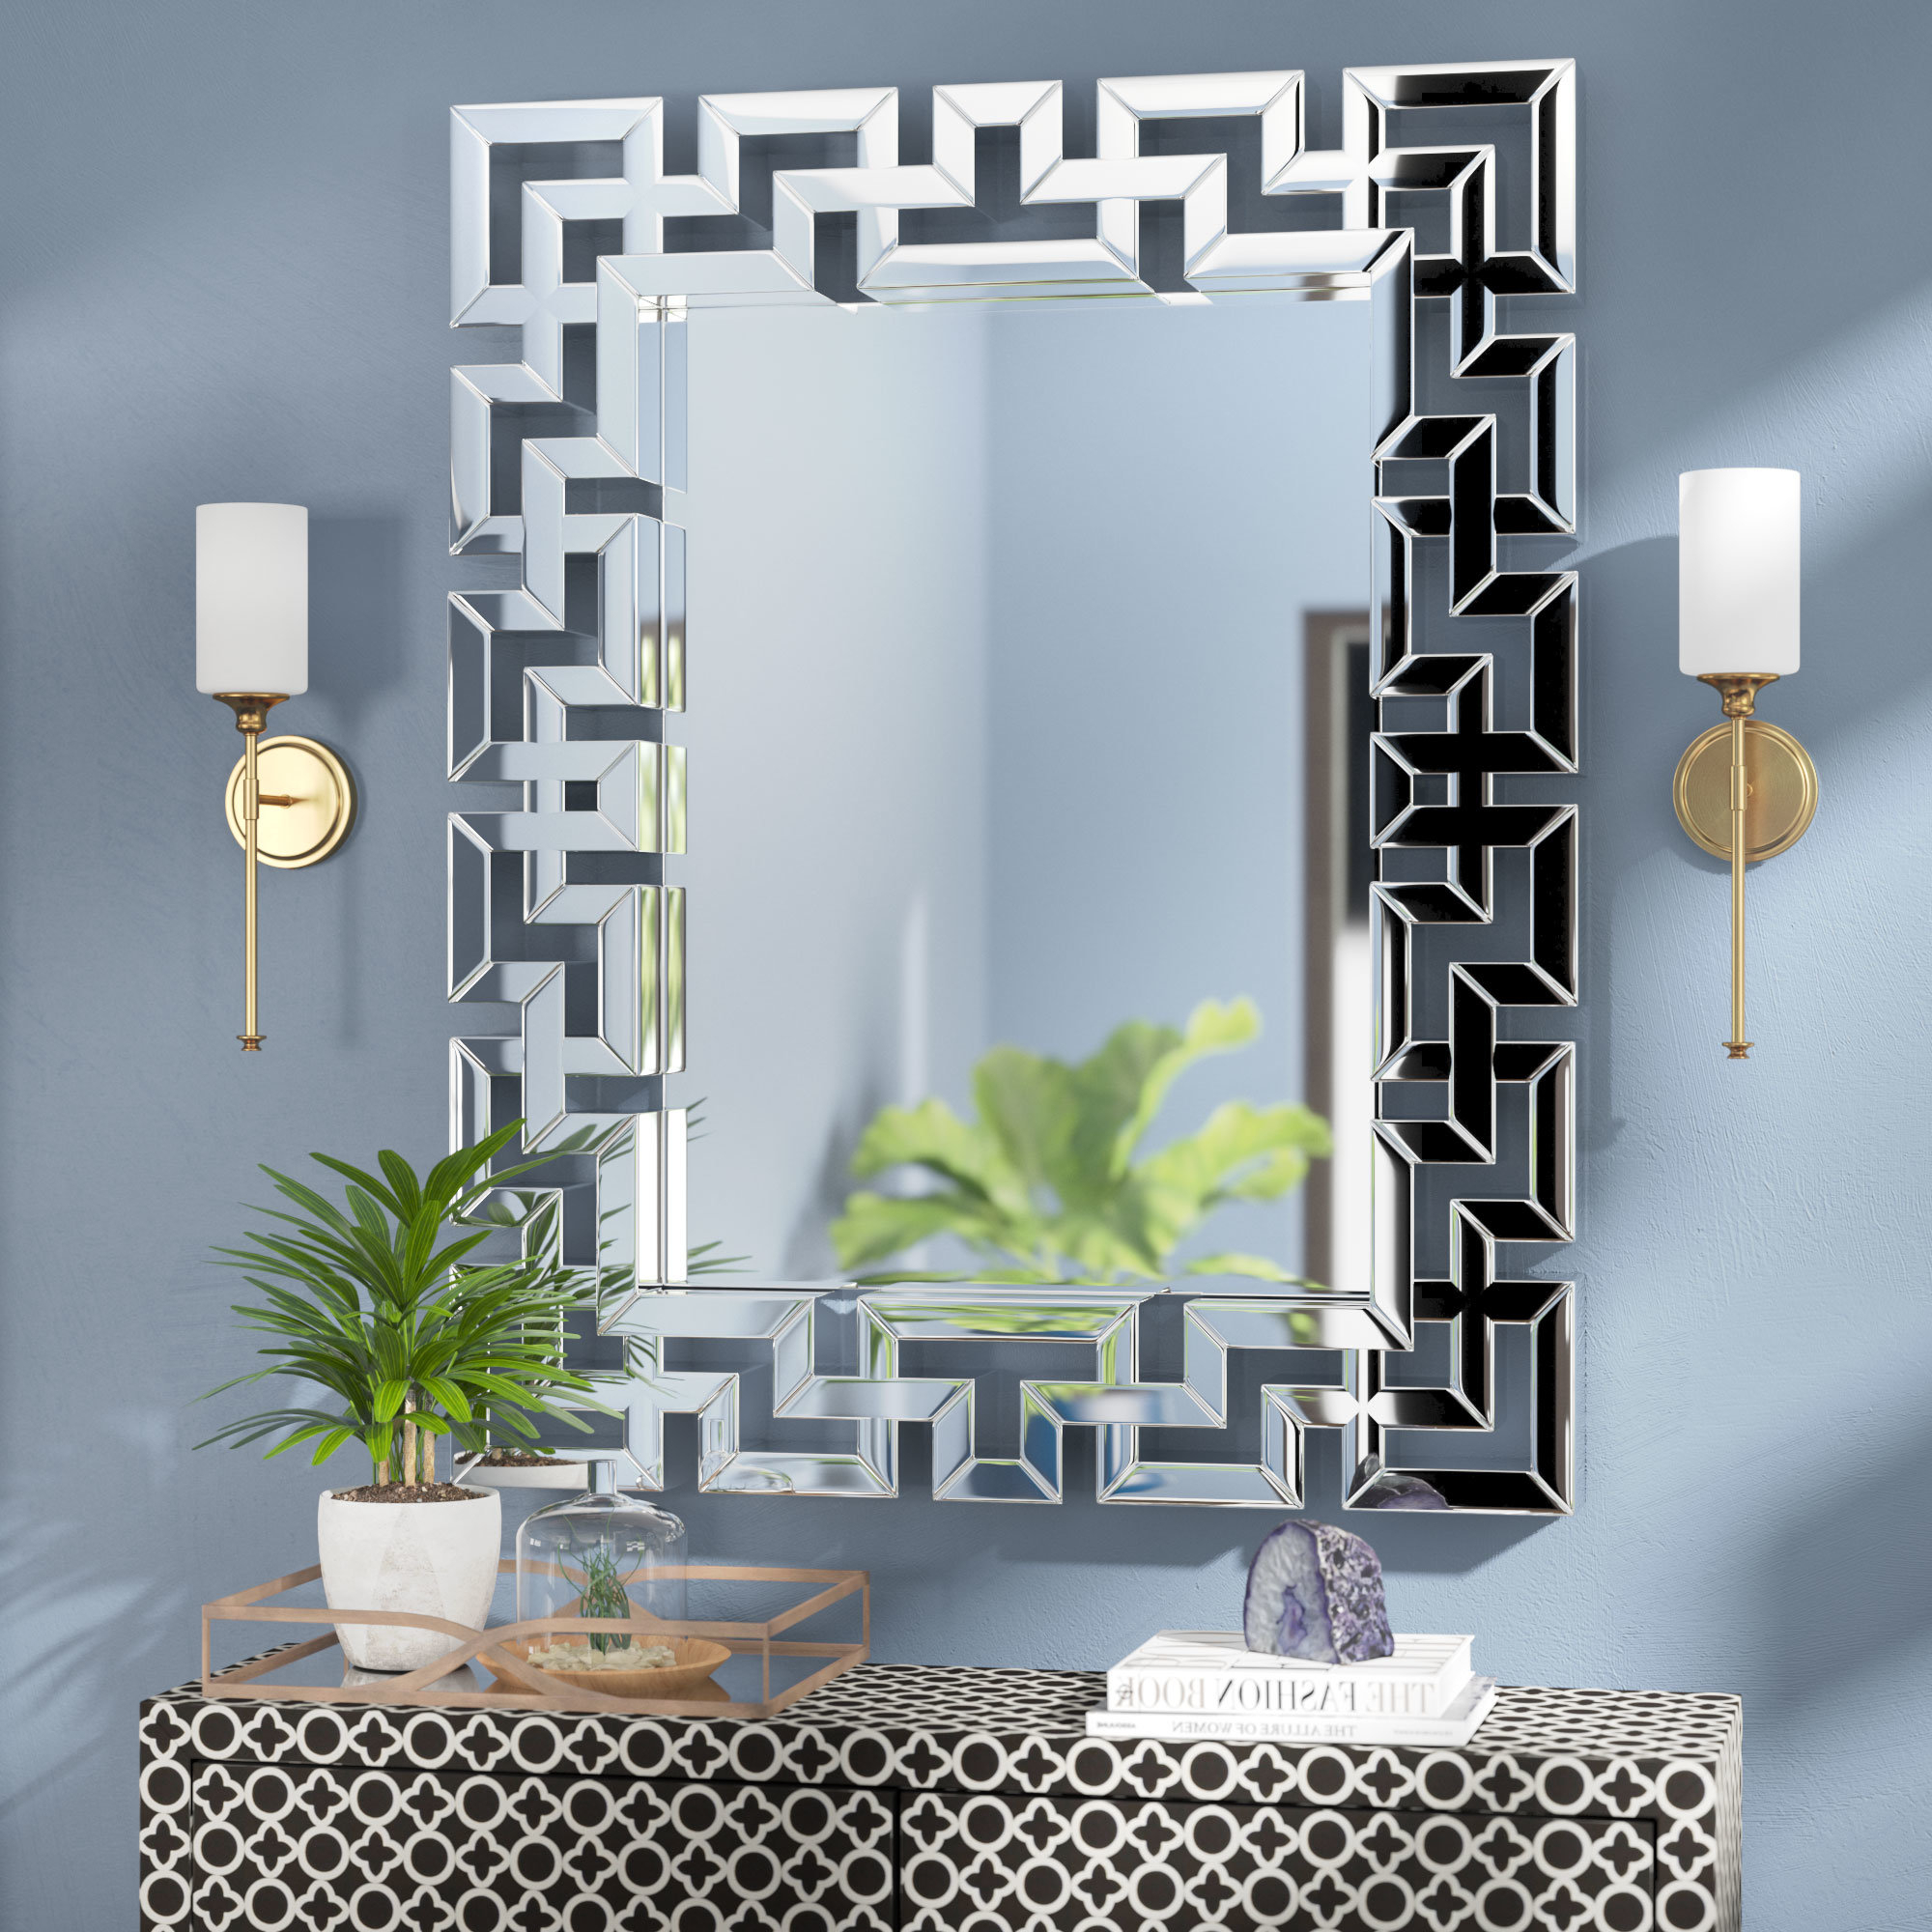 Widely Used Geometric Wall Mirrors Intended For Rectangle Ornate Geometric Wall Mirror (View 15 of 20)